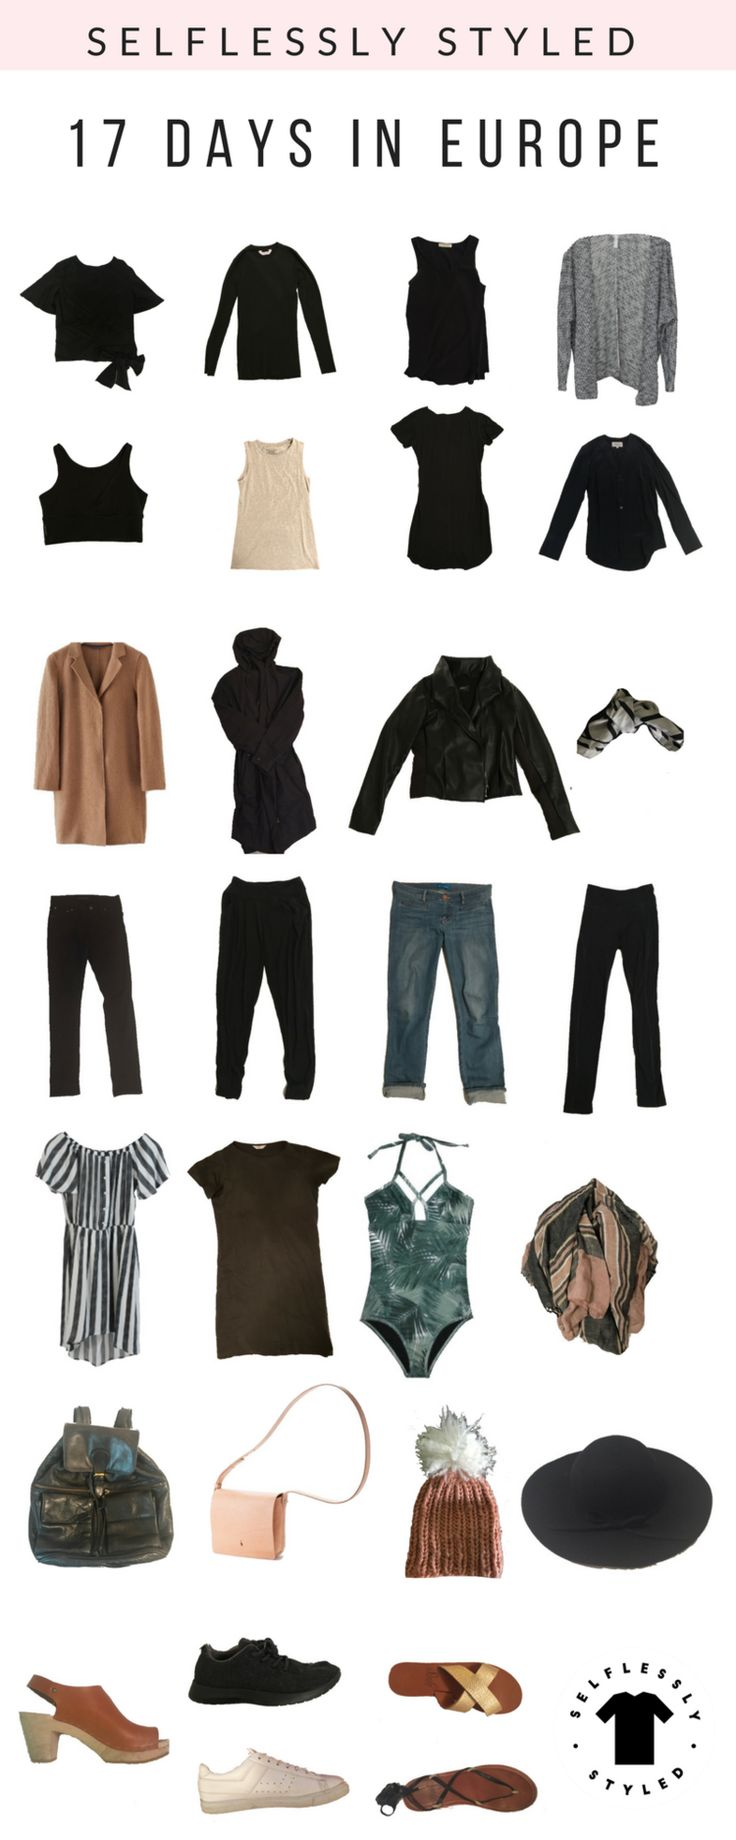 simple ethical packing list for Europe